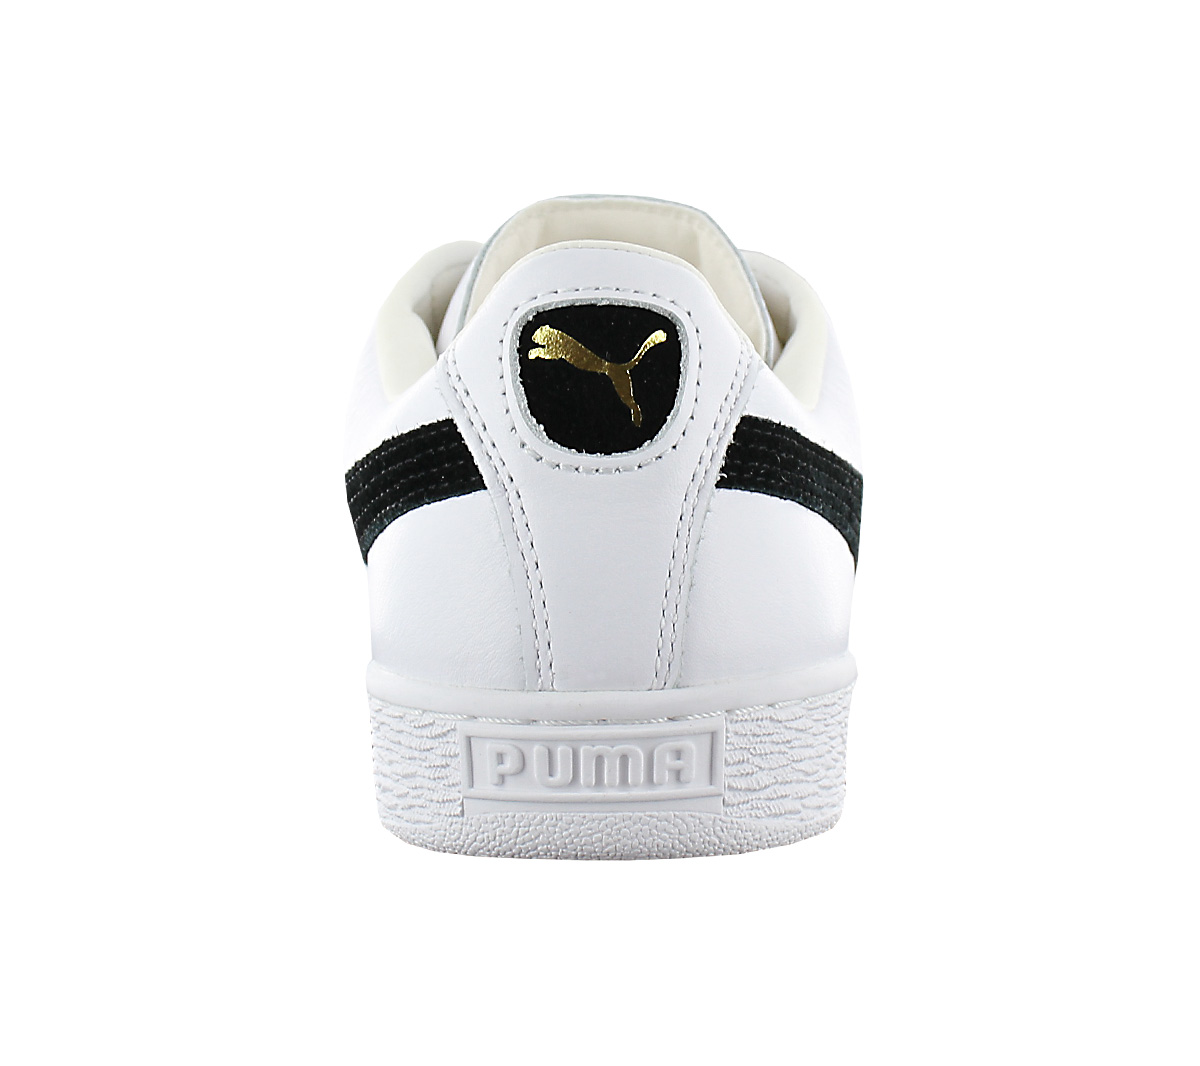 Details about Puma Basket Classic Leather Trainers Sneaker Shoes Mens Womens Leather 351912 03 show original title